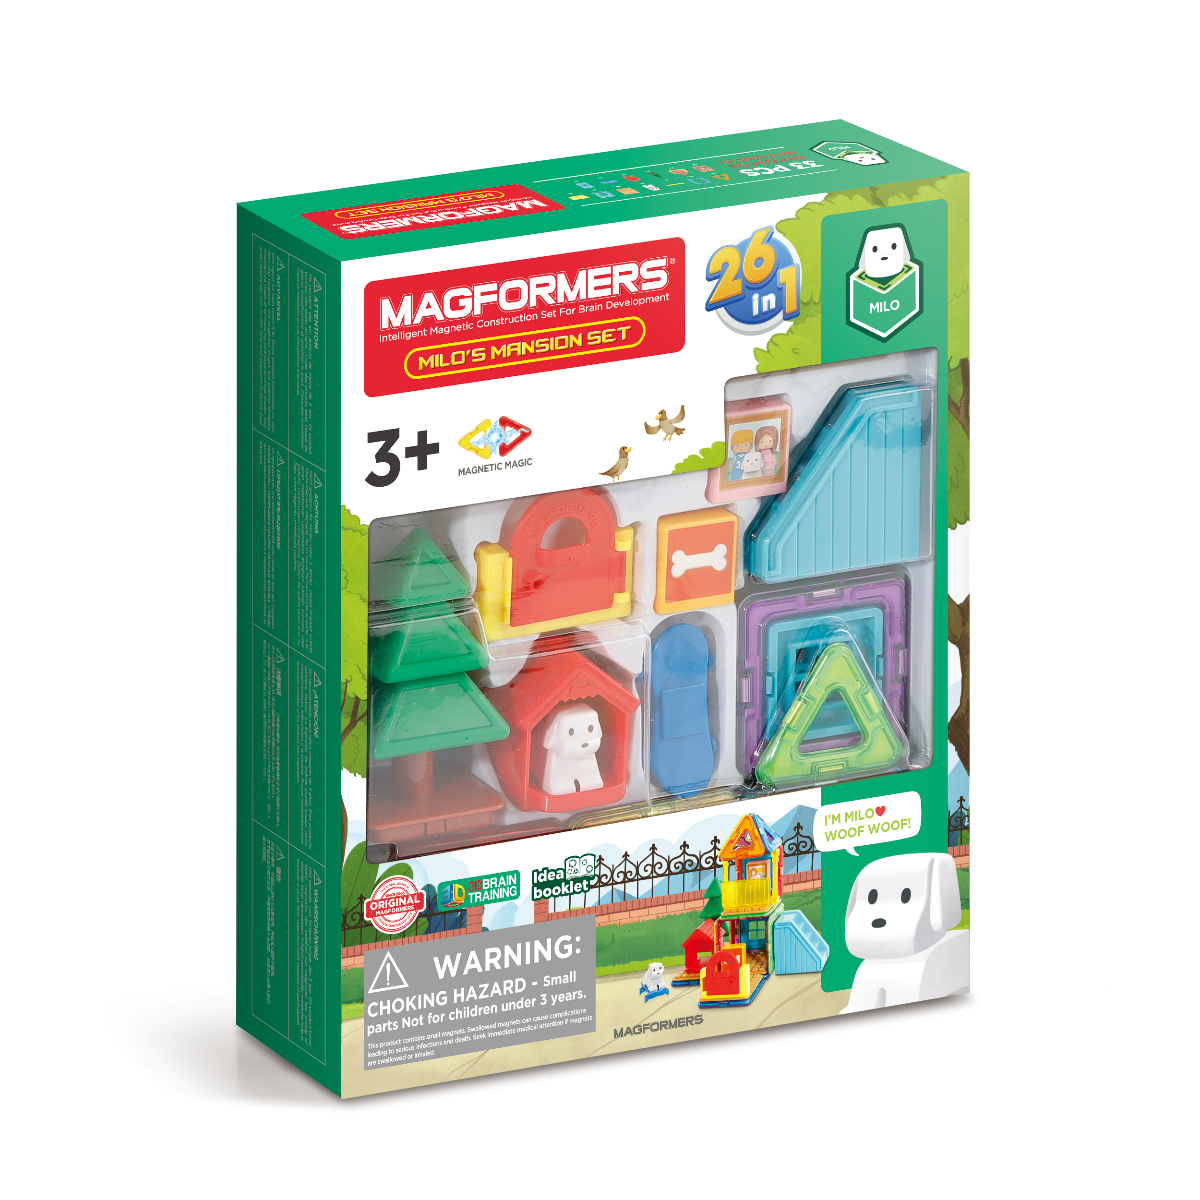 Magformers Milo's Mansion Set